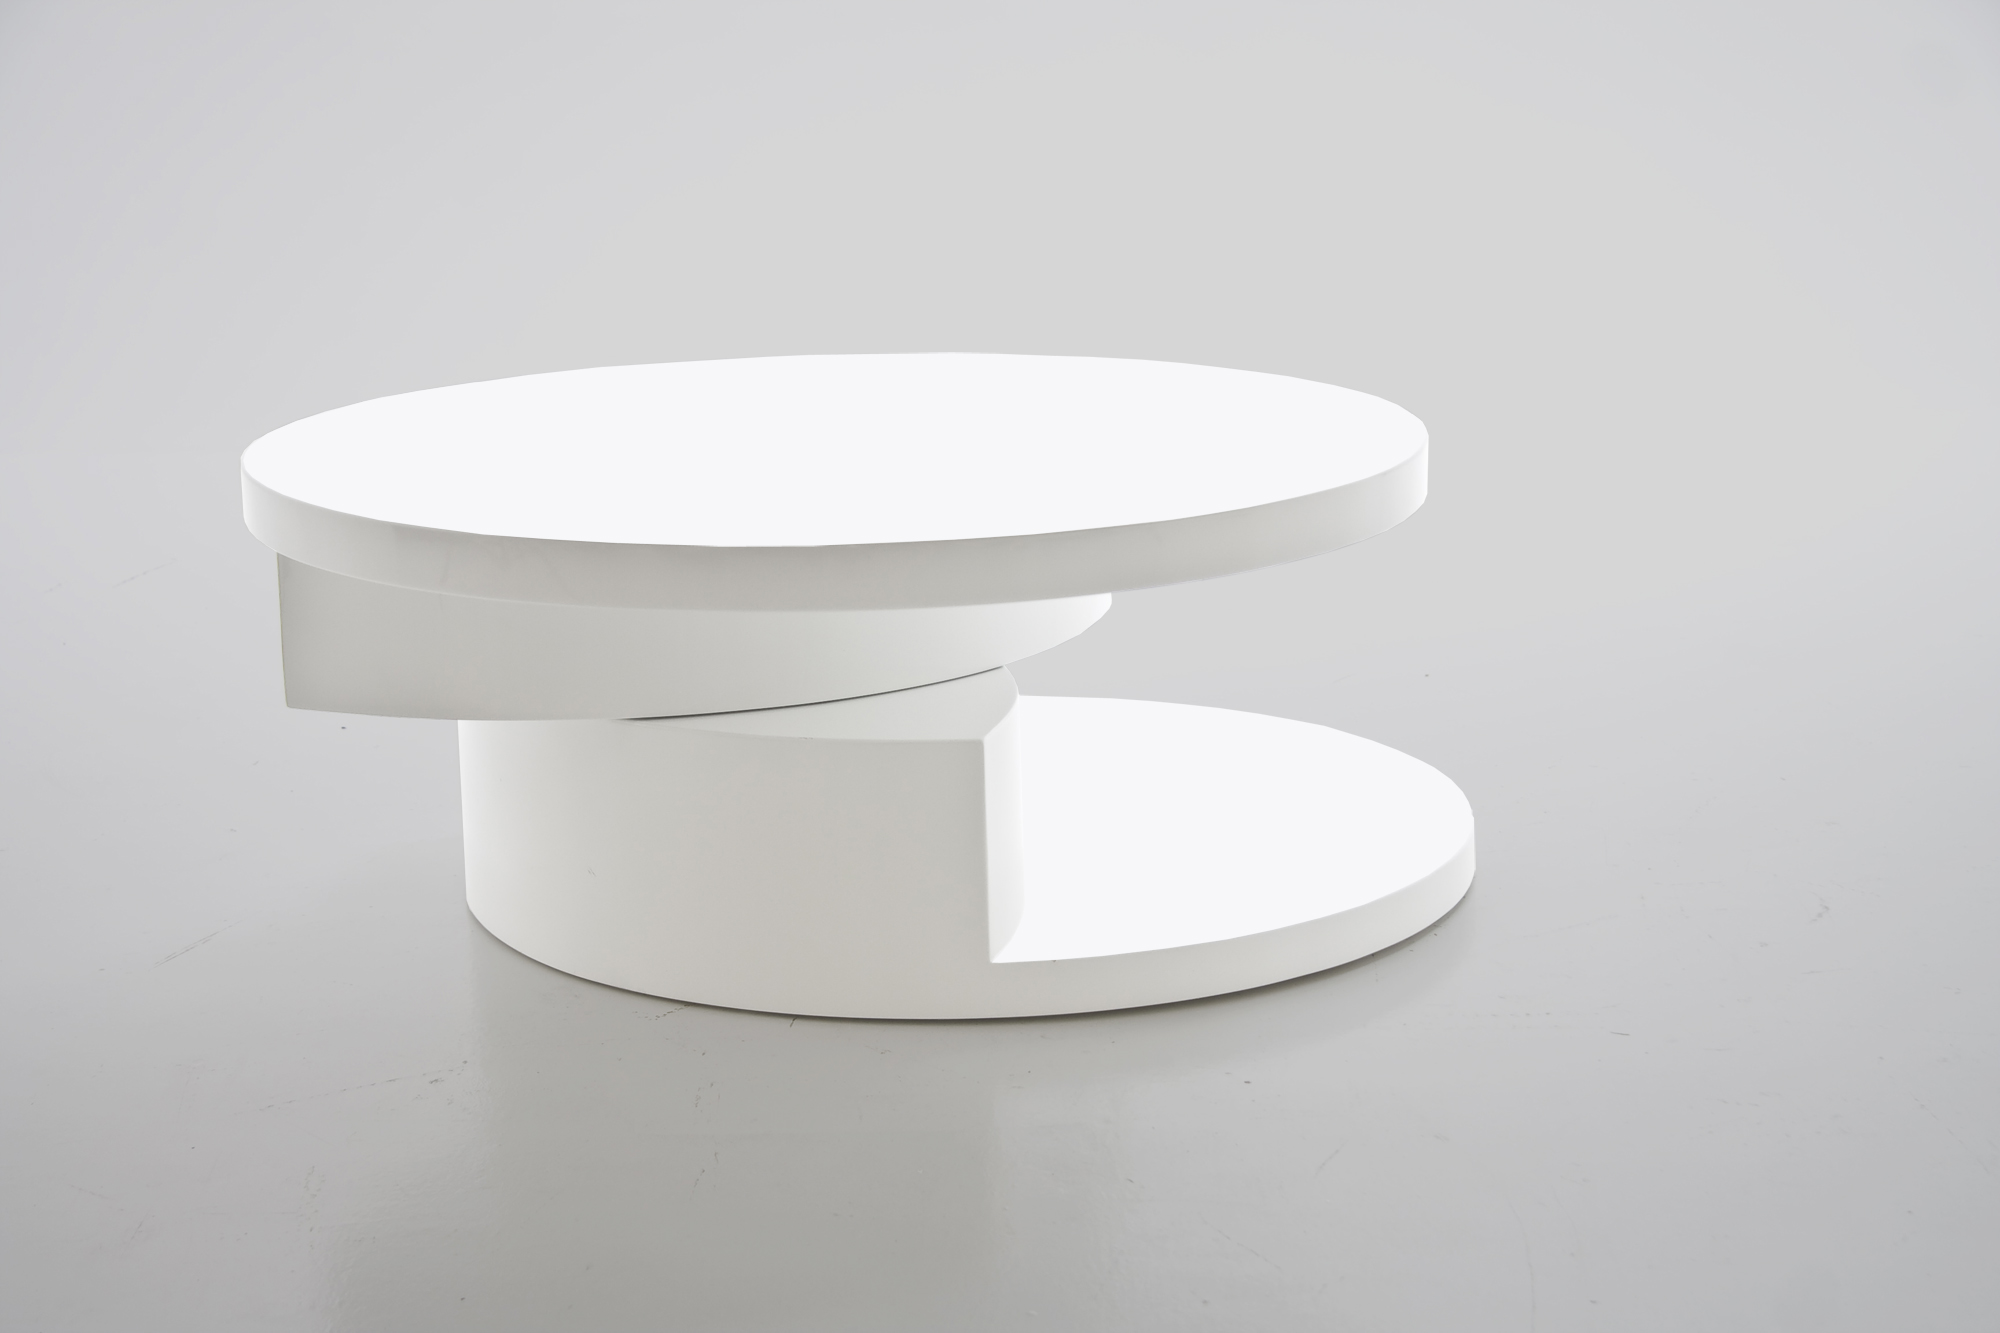 Small Coffee Table White Some Round Coffee Tables Can Have An Unusual Form  And Shape Unique